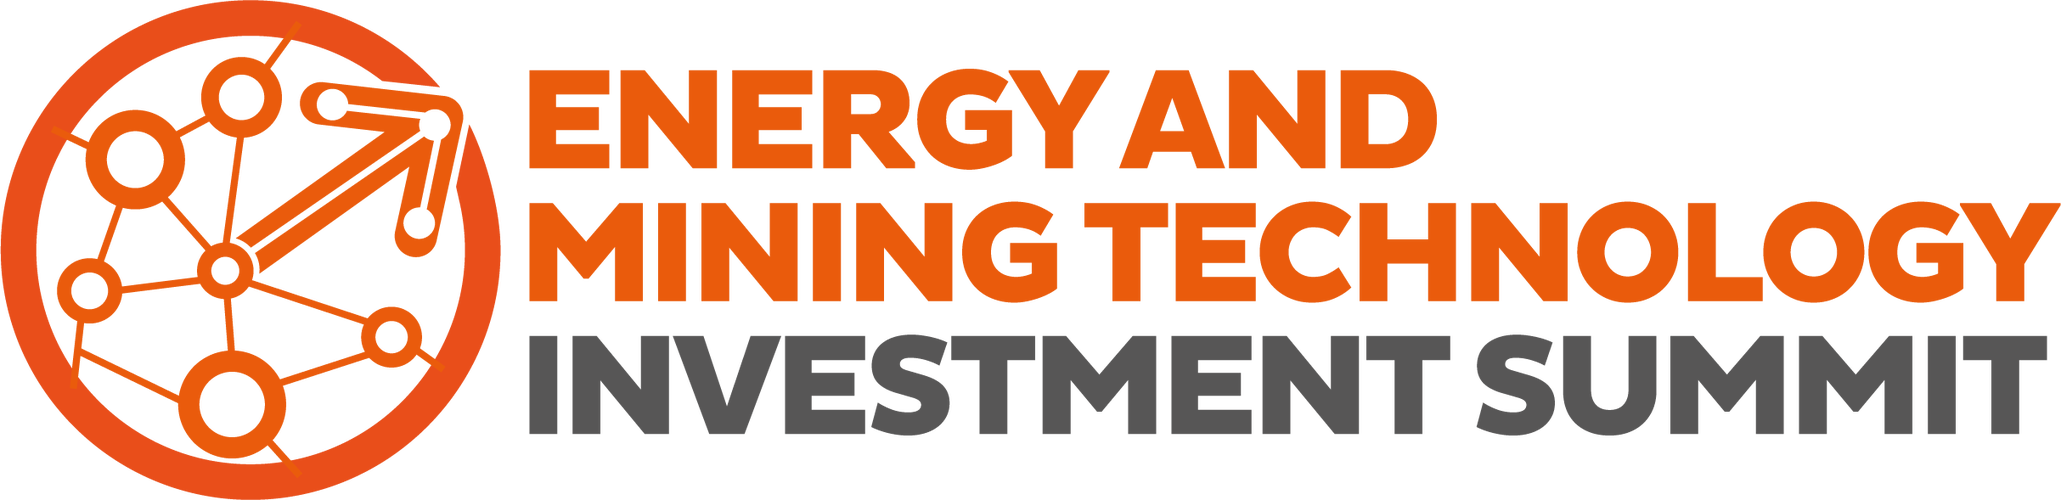 Energy and Mining Technology Investment Summit Investor Pass Application